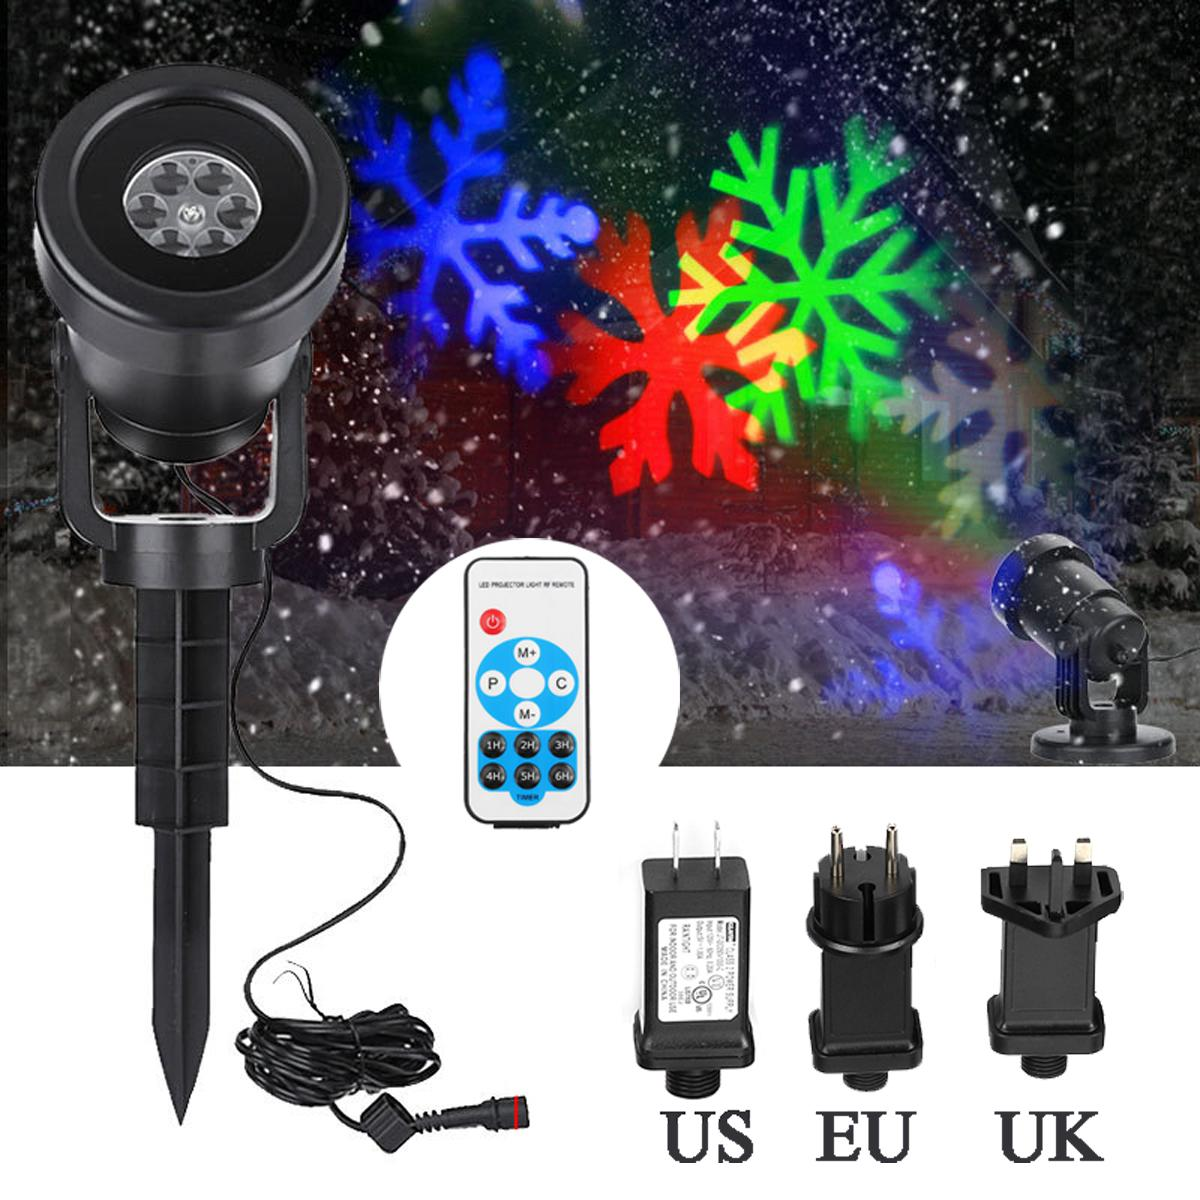 12 Patterns LED RGB Laser Stage Light Outdoor Landscape Garden Projector Moving Laser Stage Light for DJ Disco Christmas Party freeshipping 2 mtr x 4 mtr p18 matrix led rgb dj party garden star video curtain backdrop for home garden birthday party